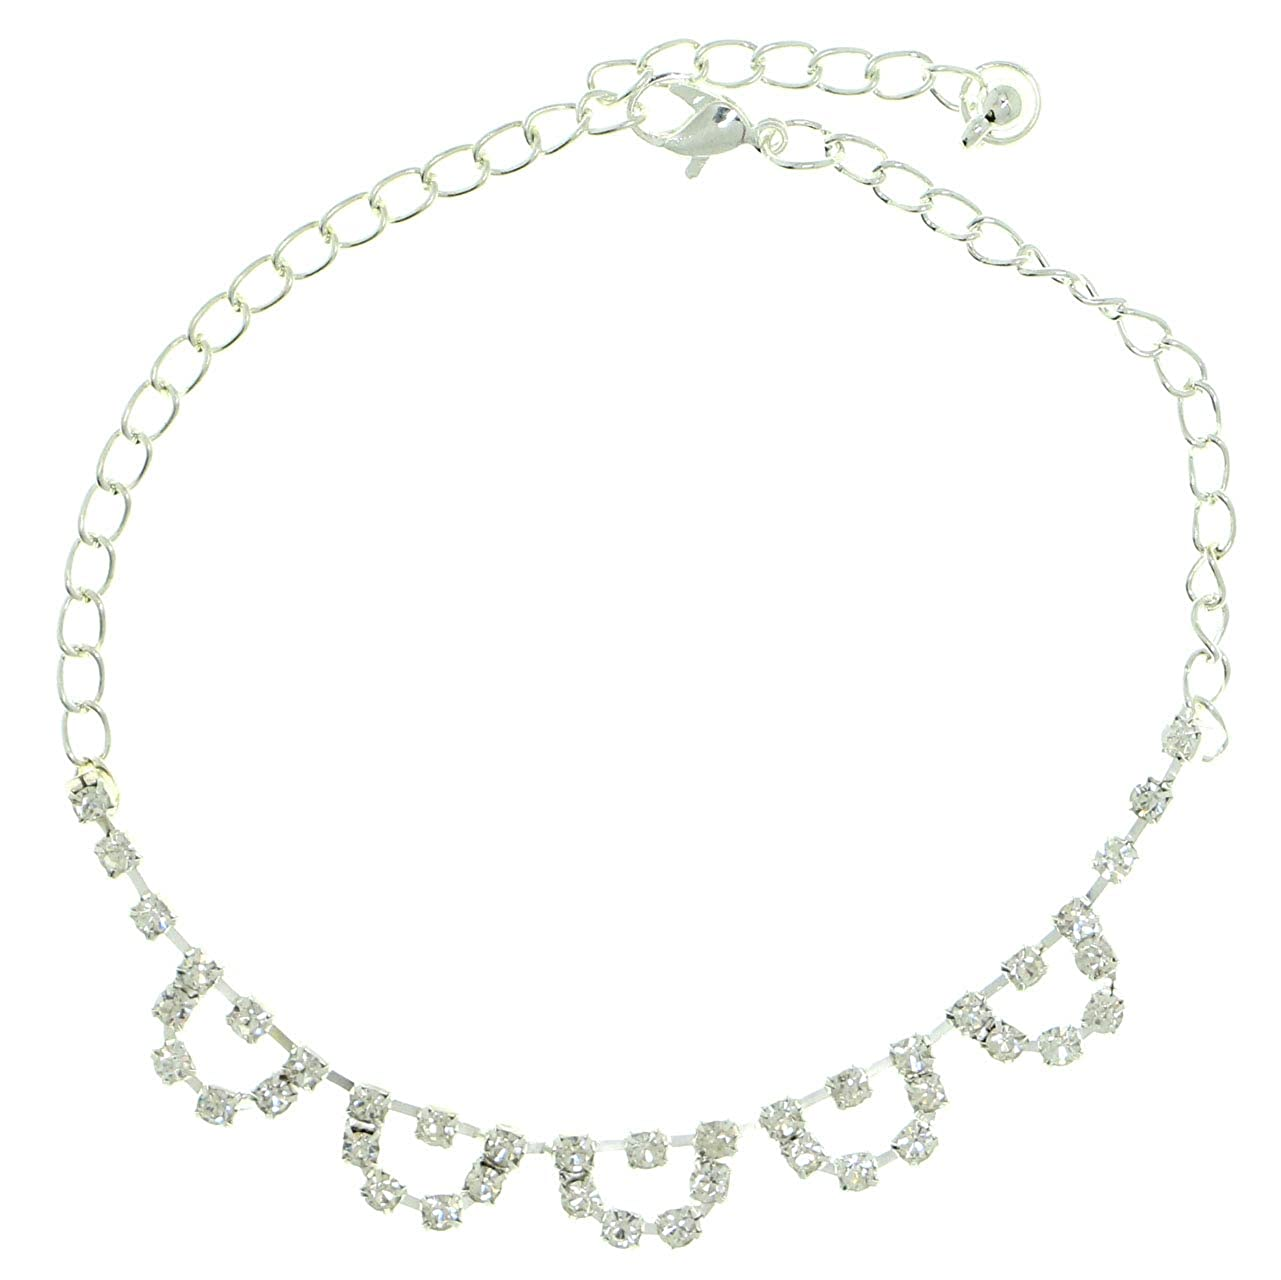 Mi Amore Silver-Tone Ankle Bracelet With Rhinestone Accents AN5070A